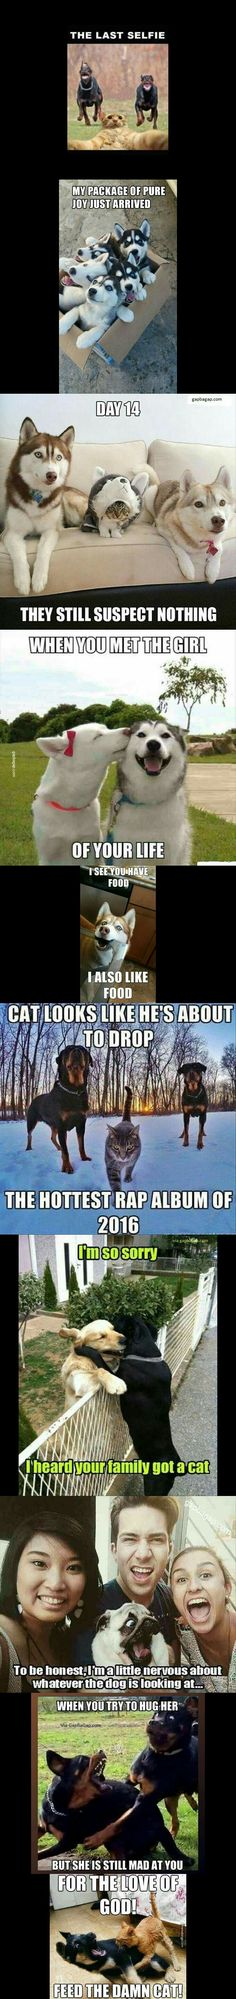 Top 10 Funny Pictures Of Funny Dogs And Cats